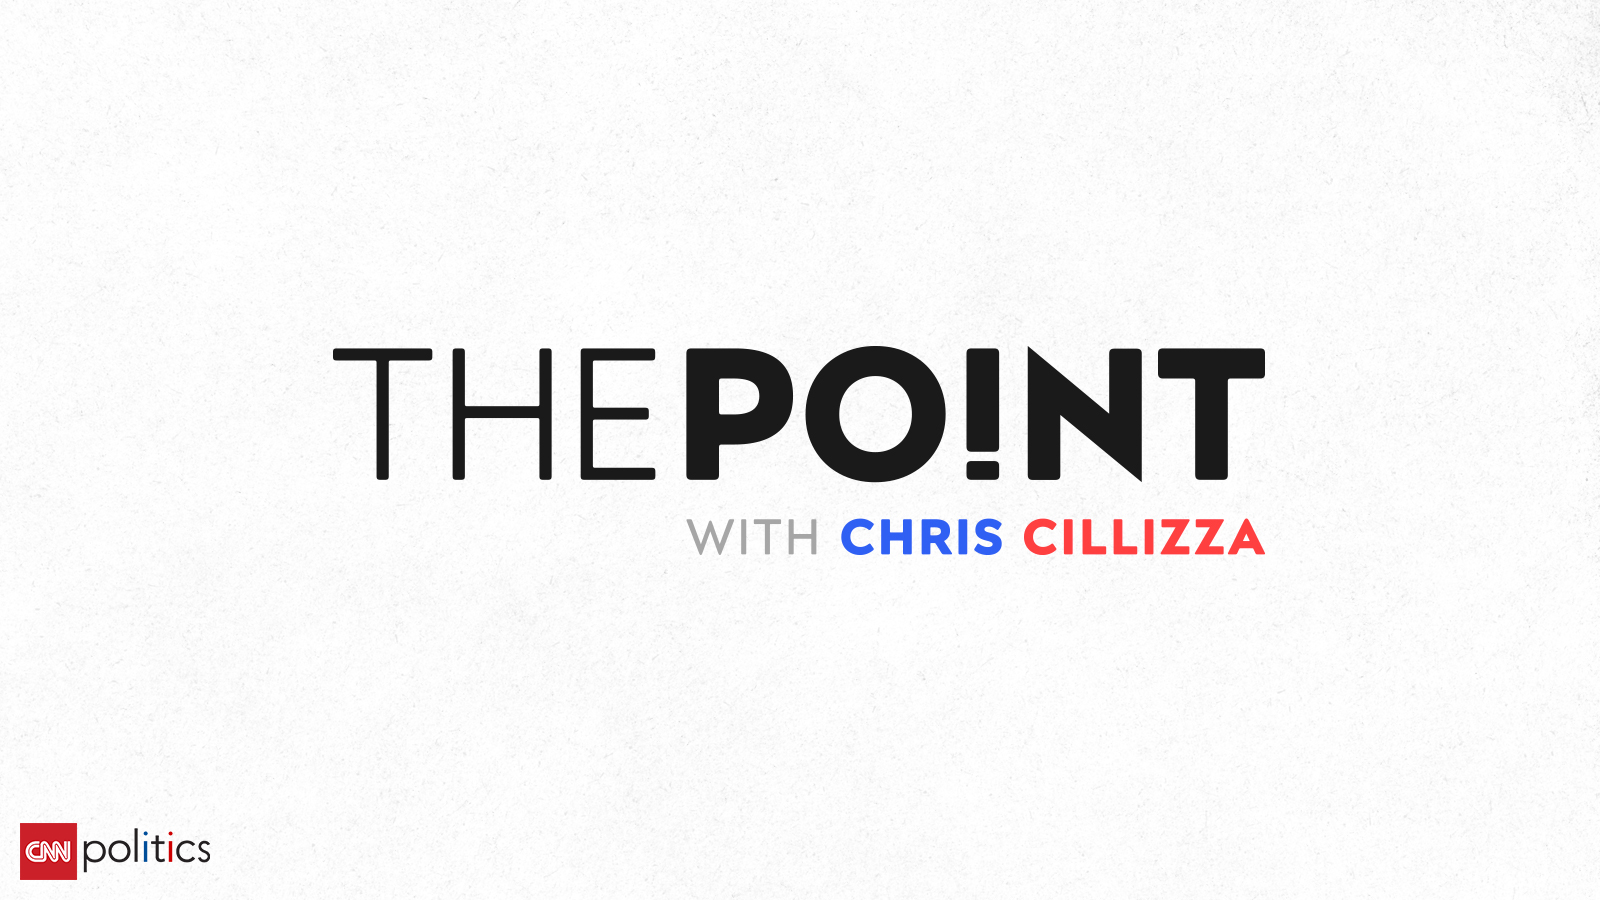 CNN Politics Launches 'The Point with Chris Cillizza'